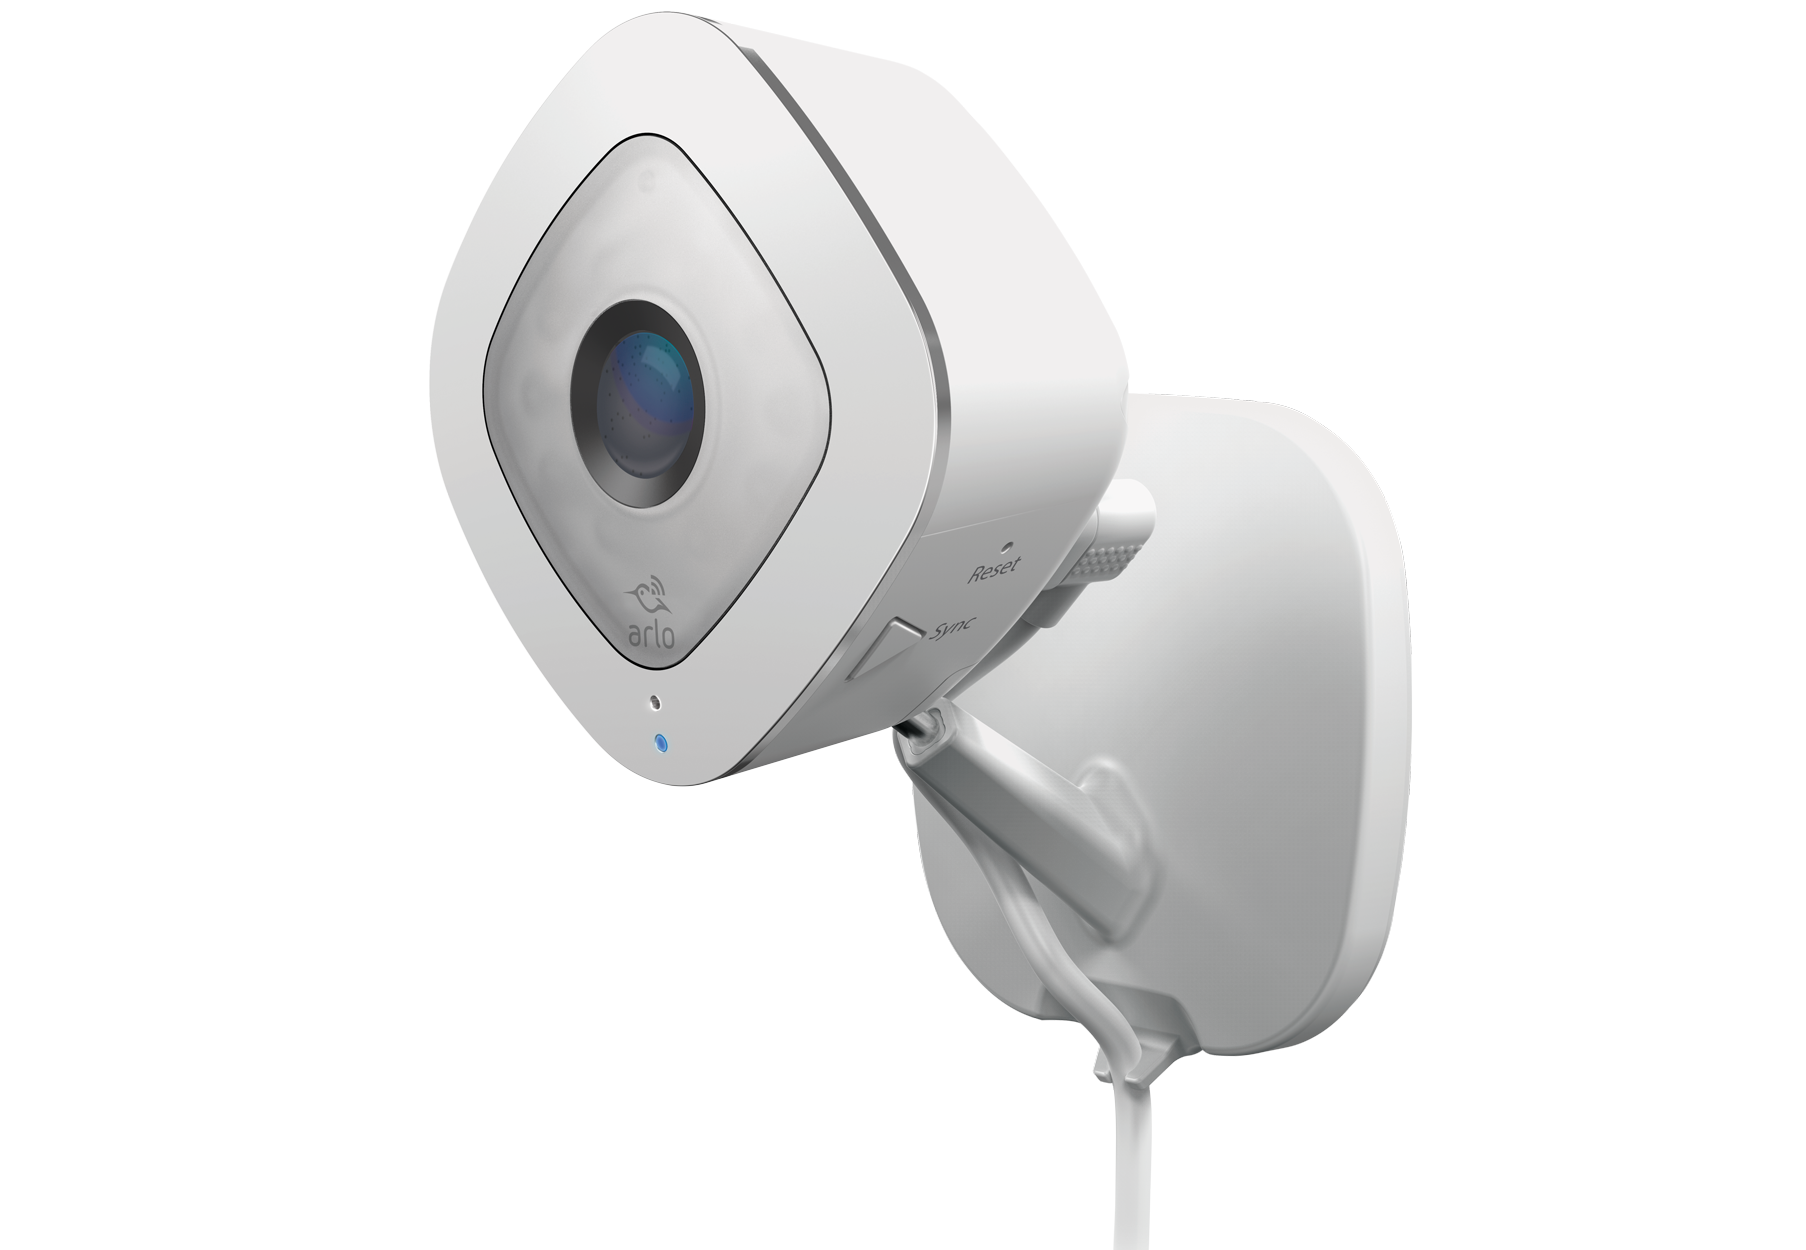 Buy Netgear Vmc3040 Arlo Q Security Camera Harvey Norman Au